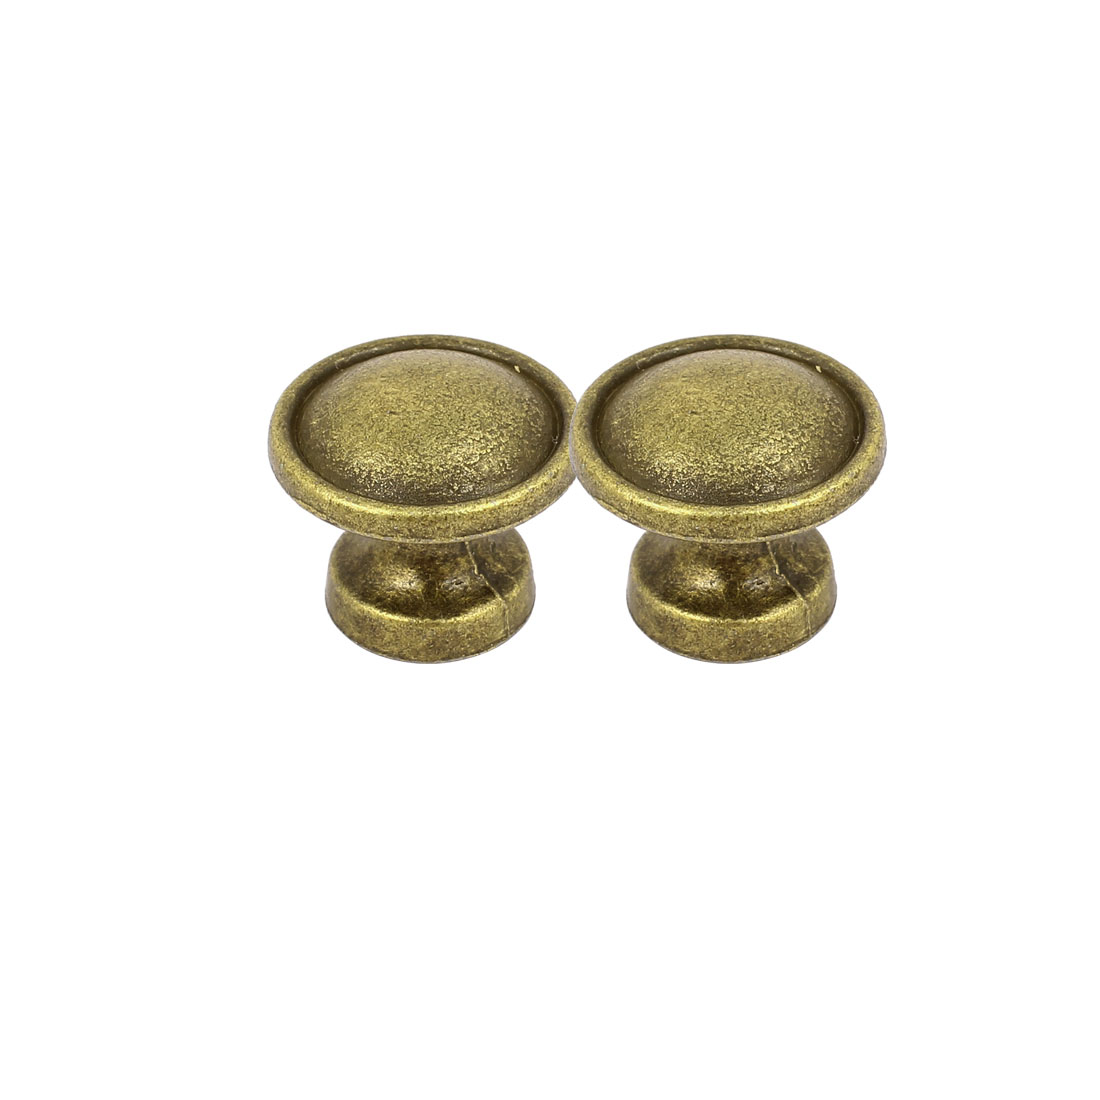 Cupboard Cabinet Zinc Alloy Round Shape Screw Type Pull Knob Bronze Tone 2pcs